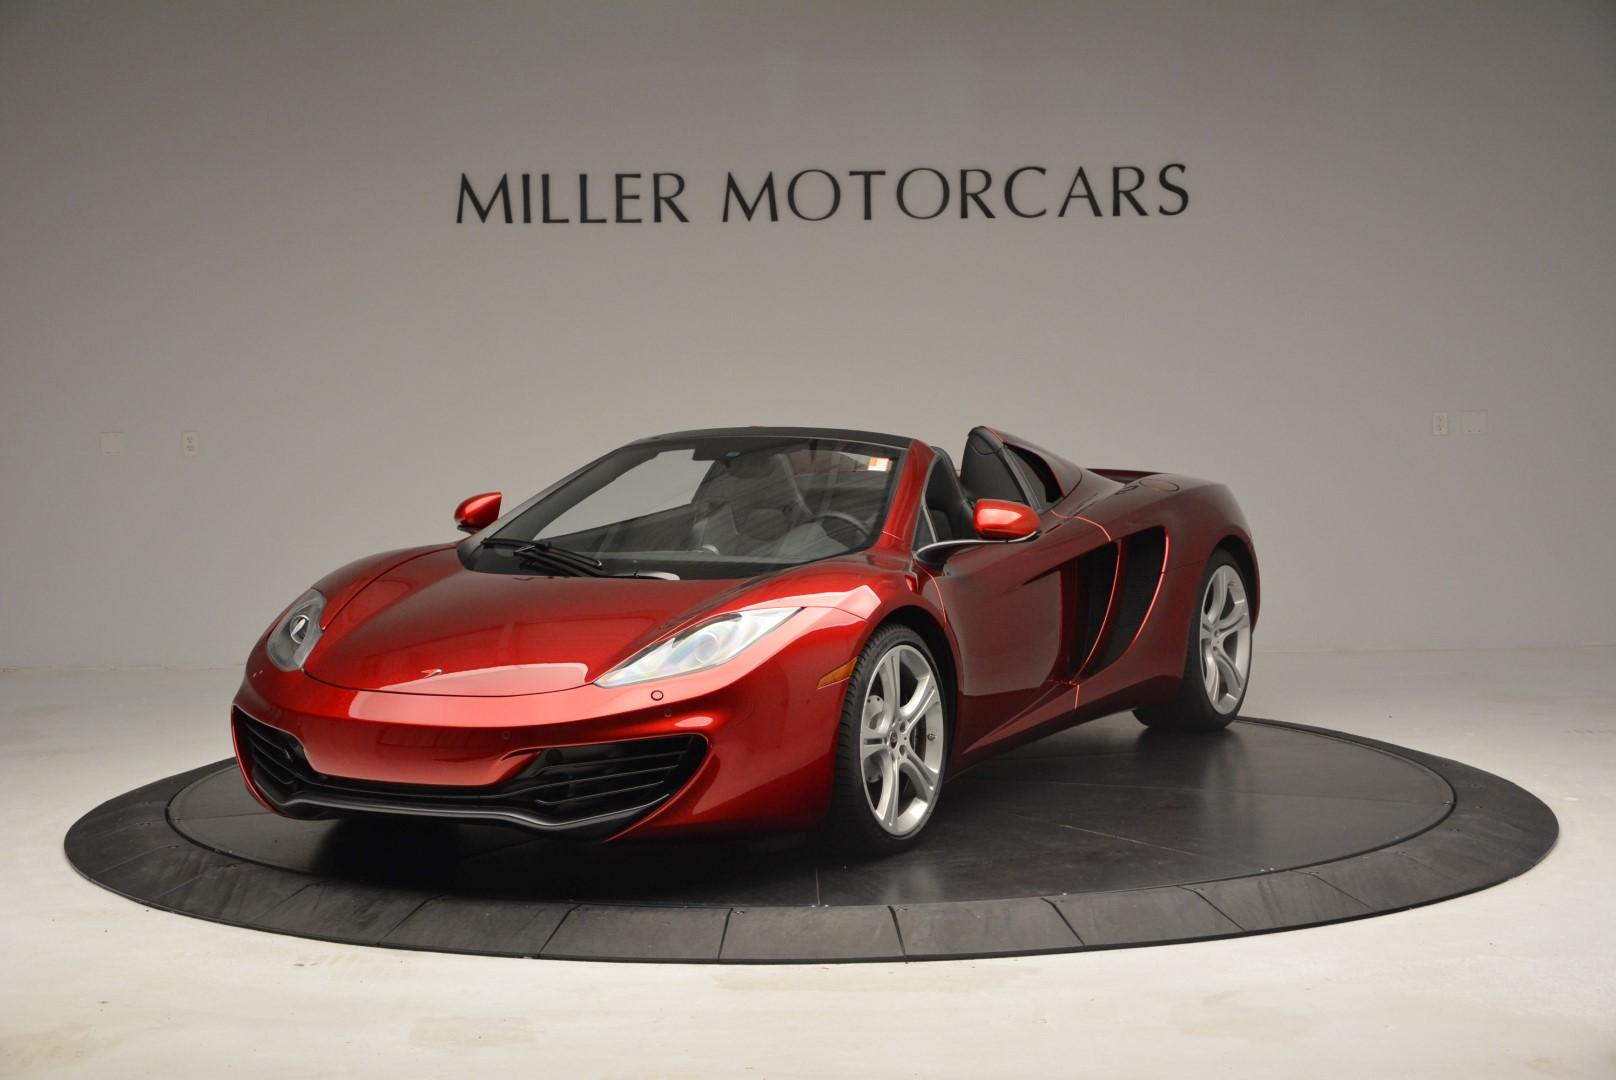 Used 2013 McLaren 12C Spider for sale Sold at Rolls-Royce Motor Cars Greenwich in Greenwich CT 06830 1